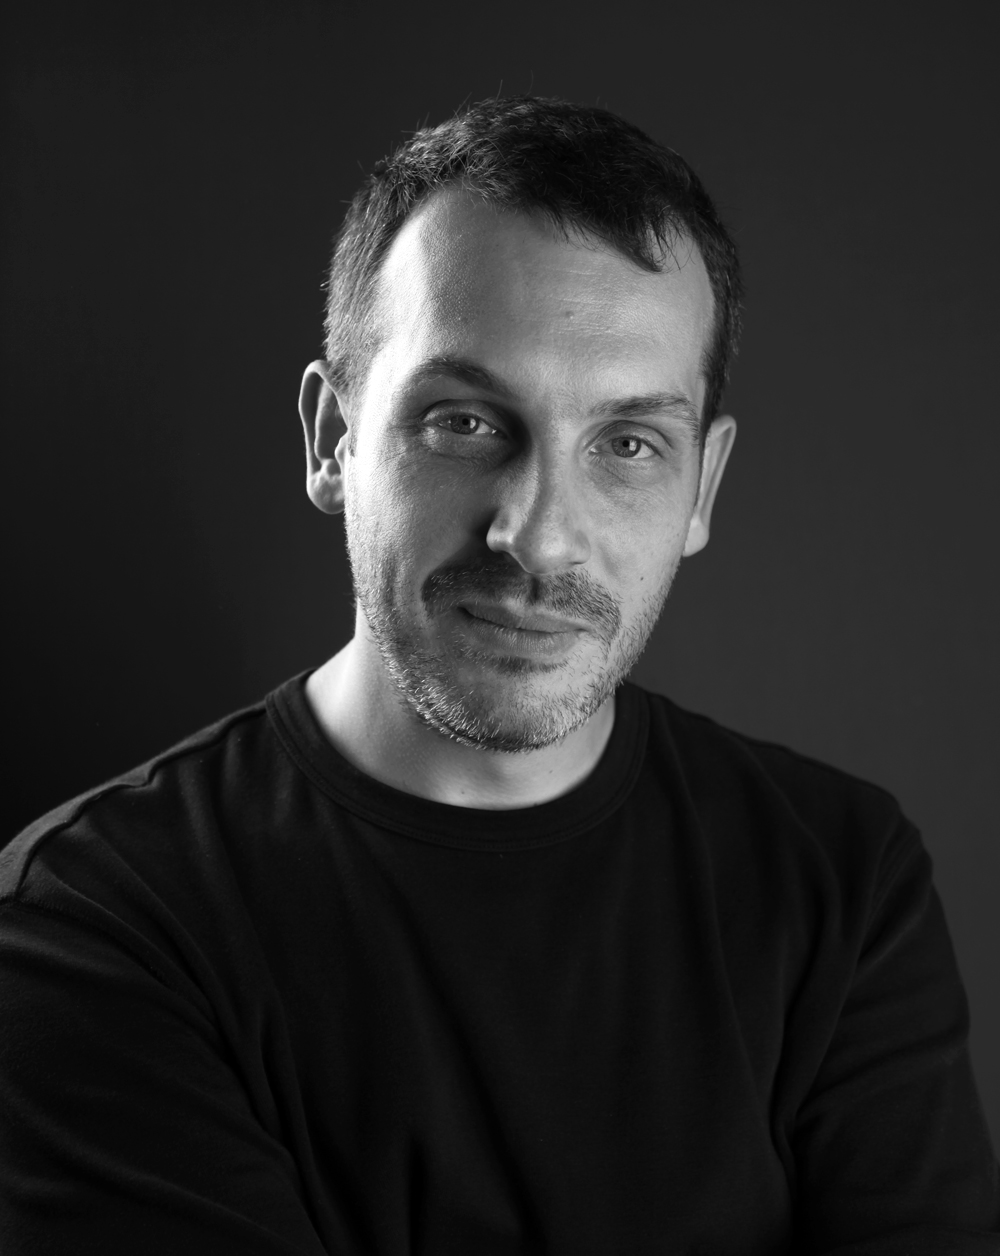 Bio |Predrag Milosevic - Predrag Milosevic (b. 1974), was born in 1974 in Belgrade, the capital city of the former Yugoslavia (now the Republic of Serbia). He completed an MFA at the University of Arts, Belgrade (2008),where he focussed on Digital Arts and Film and Video. His work blurs the lines between Artist Film and Video and NetArt often drawing on live performance, theatre and dance,which are woven together with self-composed musical compositions and abstract digital works, which blend reality and fiction and in so doing use digital forms and moving image to create visual montages that move between virtual and physical space, reality and dream, the real and the imagined. His works have been reported to have a transformational affect in their ability to distil time and context and to plague the memory through the use of sound, abstract digital imagery and figurative movement,which combine to produce invented imaginary or nostalgic worlds that force us to contemplate ourselves and our immediate surroundings. He has made new work for commissions and exhibitions internationally including: 'Secret Garden (2012), a new commission for the Secret Garden, a one-act ballet choreographed and staged by Sasha Evitomova, performed by Nina Ananiashvili State Ballet of Georgia —Music by Sebastian Plano and Ólafur Arnalds, presented at the Alexander Griboedov State Russian Drama Theatre, Tbilisi, Georgia; Awaking (Budjenje),(2010) an Interactive cyber ballet Directed by Bosko Djordjevic, Choreography: Michele Merola.Terazije Theater, Belgrade, Serbia; Multimedia (2009), for the 25th Universiade 2009 Opening Ceremony, Belgrade, Serbia; Winter Gardens (2009) – for the 40th International Theatre Festival of the Venice Biennale, 'Mediterraneo'; Fantasmagorie (2008), a new commission for a film directed by Rastko Ciric dedicated to Emil Chol's first animated cartoon, presented in Paris, France and subsequently represented again that year at the Monstra International Animated Film F